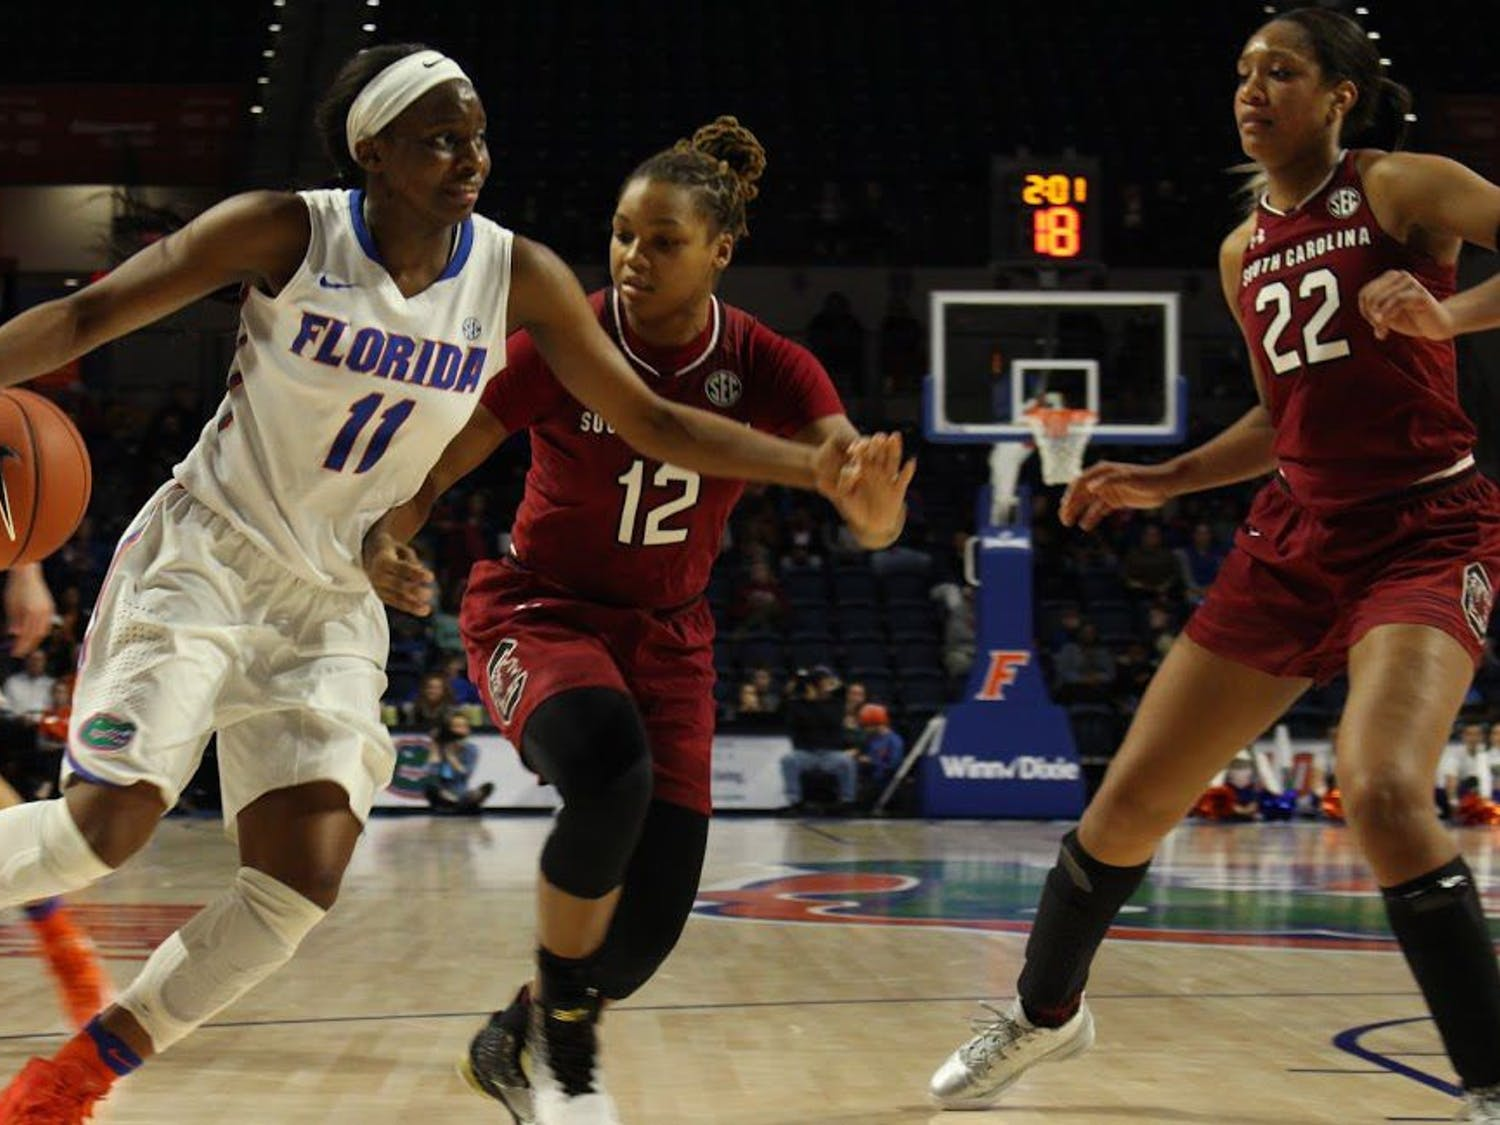 UF guard Dyandria Anderson dribbles the ball in Florida's 81-62 loss to South Carolina on Jan. 8, 2017, in the O'Connell Center.